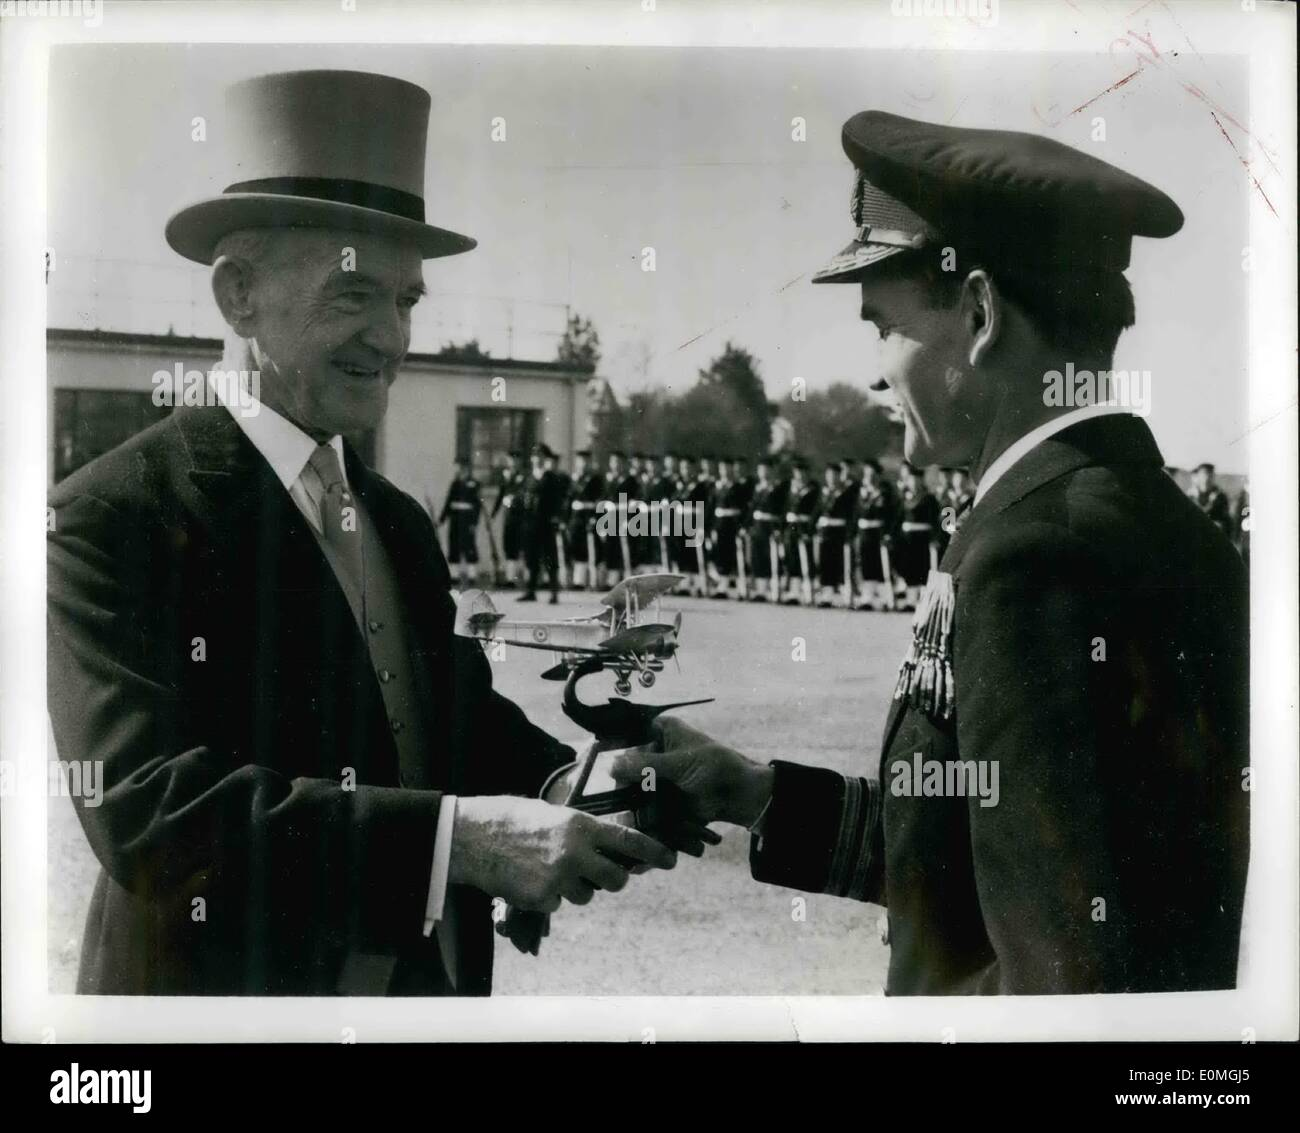 Apr. 04, 1955 - Wartime ace is award winning test pilot; The Boyd Trophy, awarded annually in Britain for the most outstanding feat in naval aviation, was presented this year to the Naval Test Squadron at the Airplane and Armament establishment at Boscome Down, England, for its contribution to the improvement of naval aircraft and the testing of new and undeveloped types. Photo Shows Admiral Sir Denis Boyd (left) presents the to Commander SG Orr of the Naval Test Squadron. During the war Commander Orr was a fighter pilot aboard the carrier ''Illustrious'' under Admiral Boyd's command - Stock Image